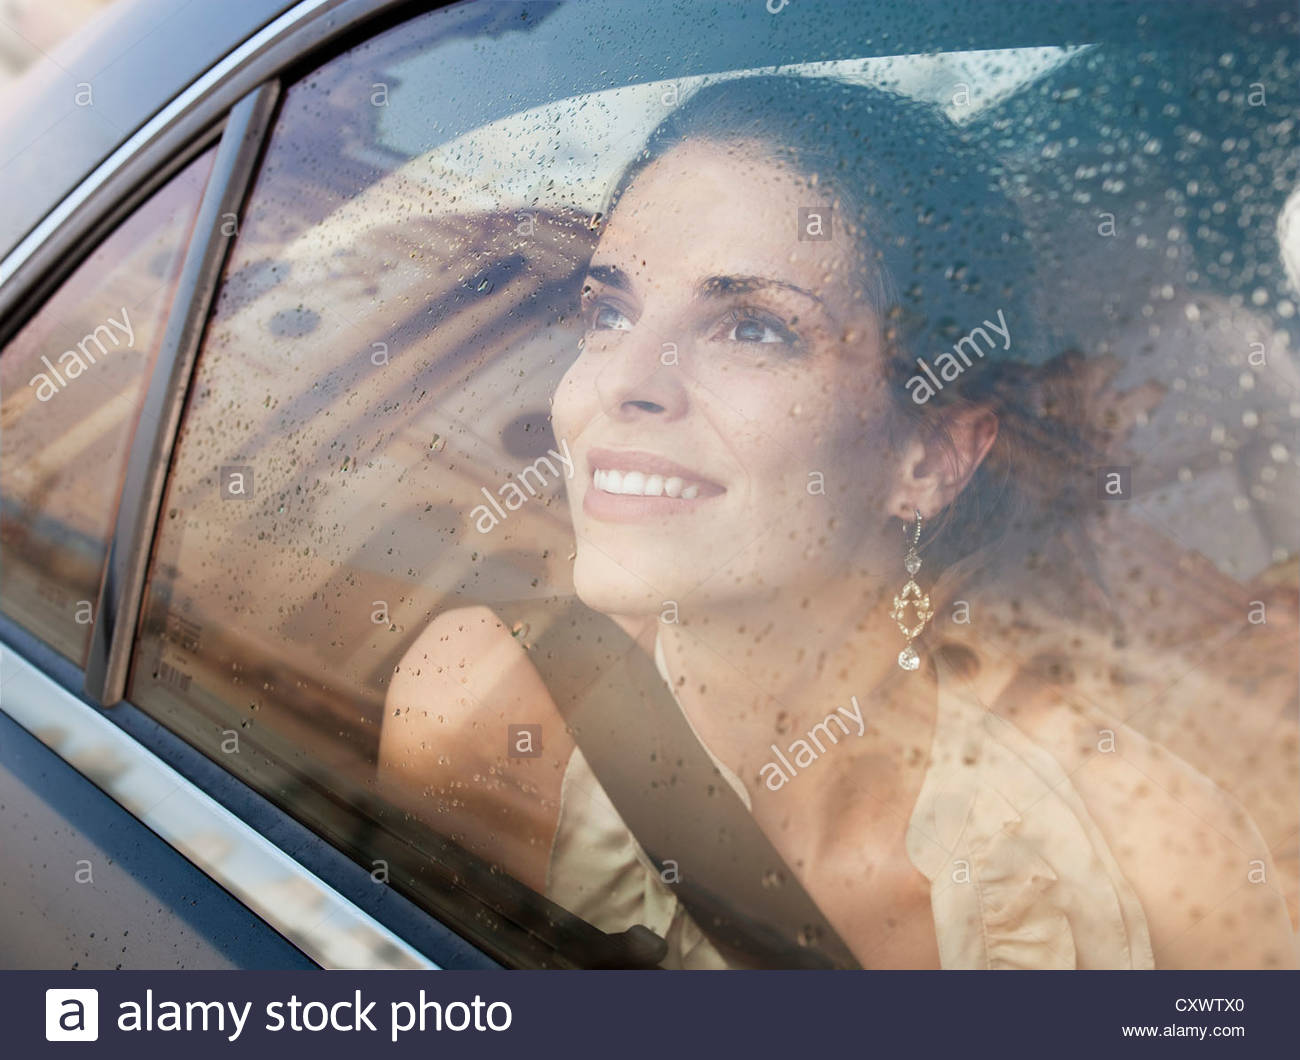 Smiling woman looking out car window - Stock Image